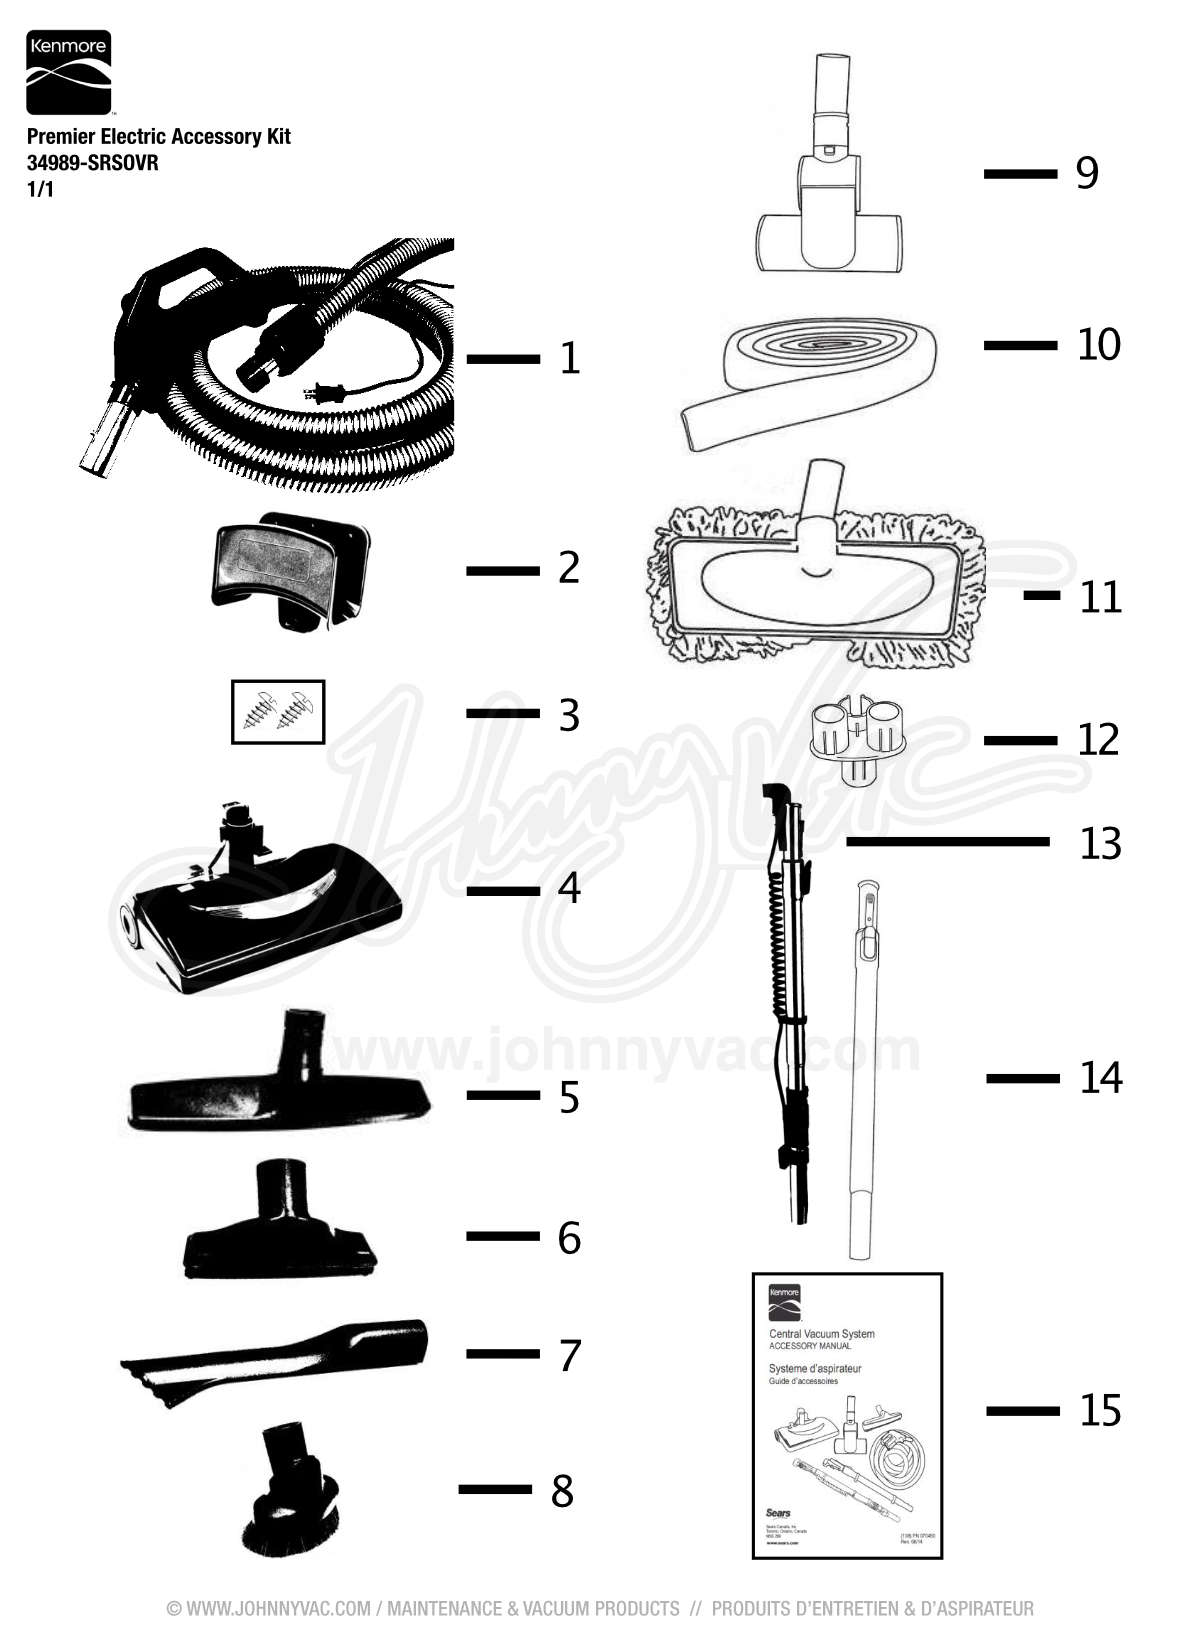 Kenmore Cenral Vacuum Wiring Diagram Page 4 And Schematic Exploded View For Central Kit 108 34745 Model